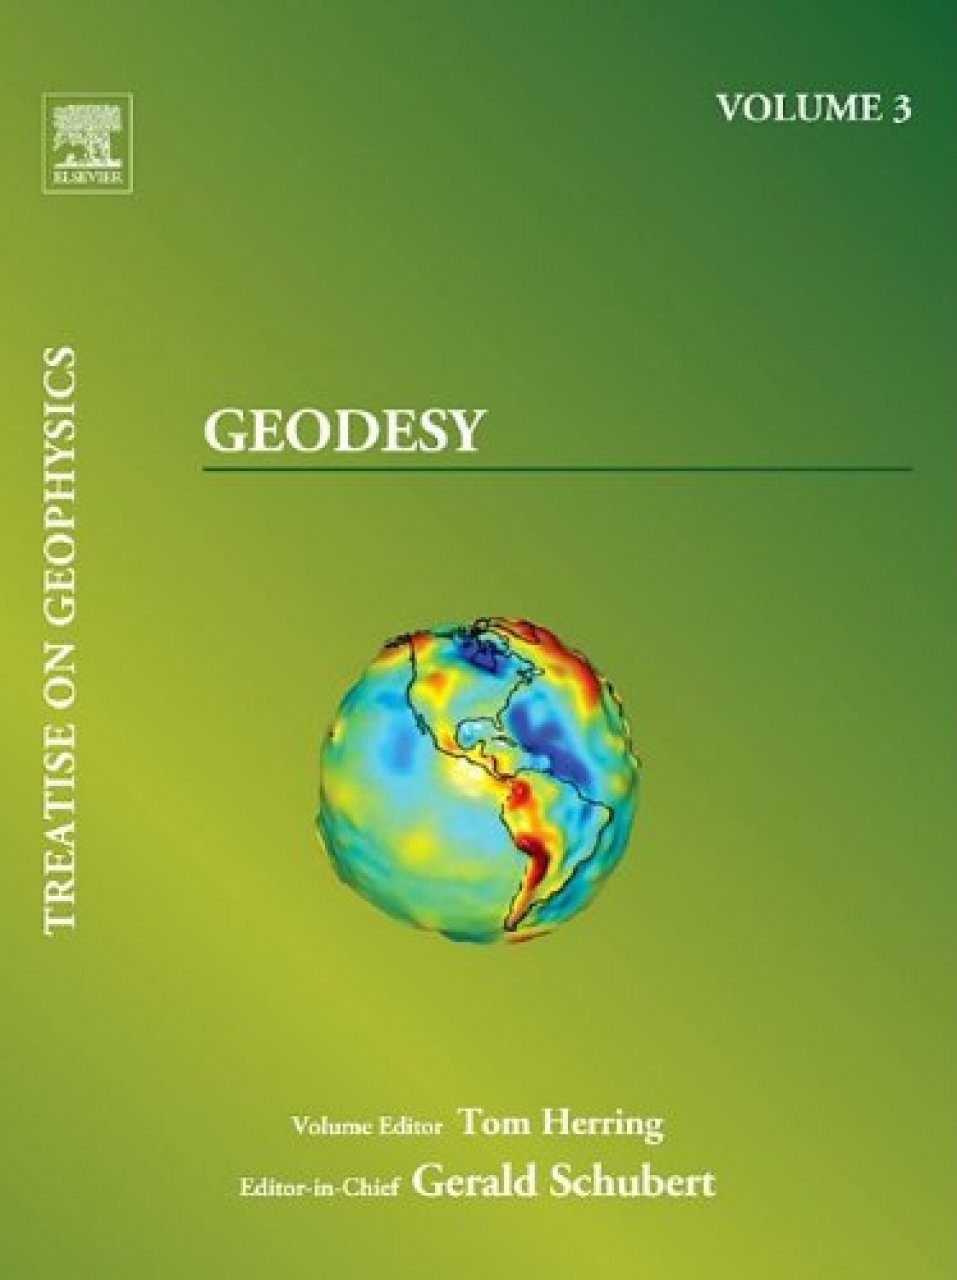 Geodesy: Treatise on Geophysics